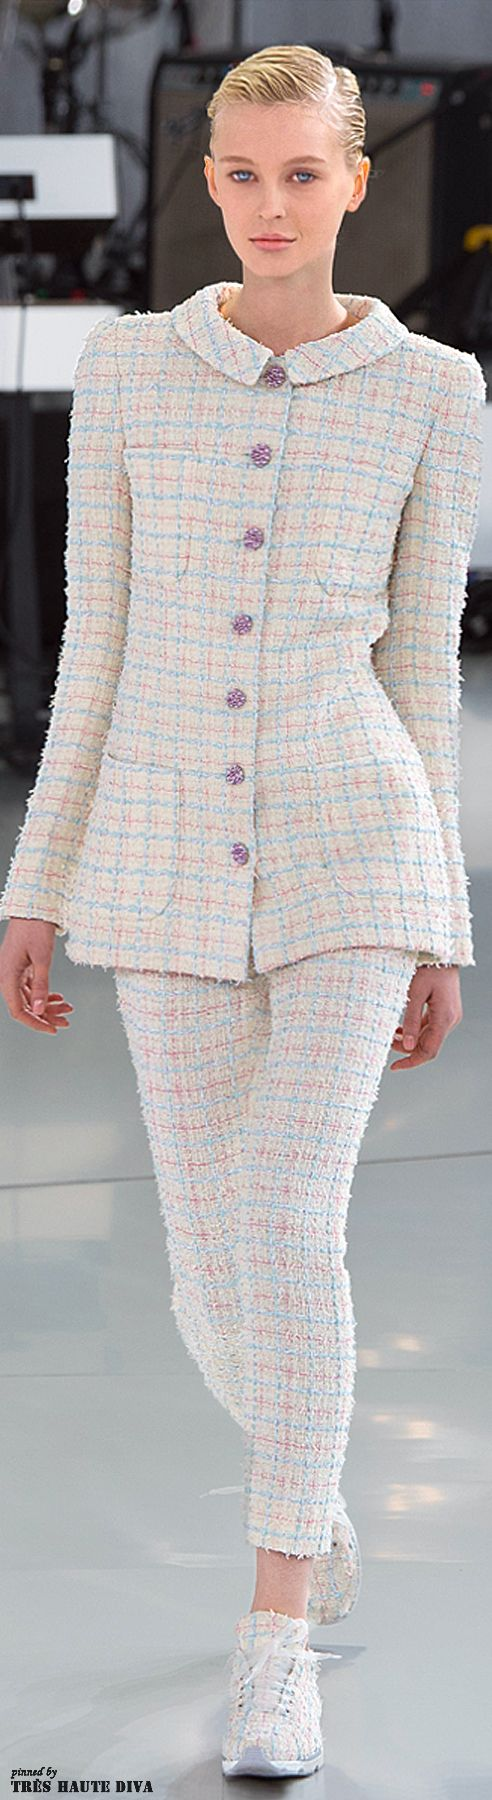 Chanel Spring 2014 Couture www.vogue.com/...